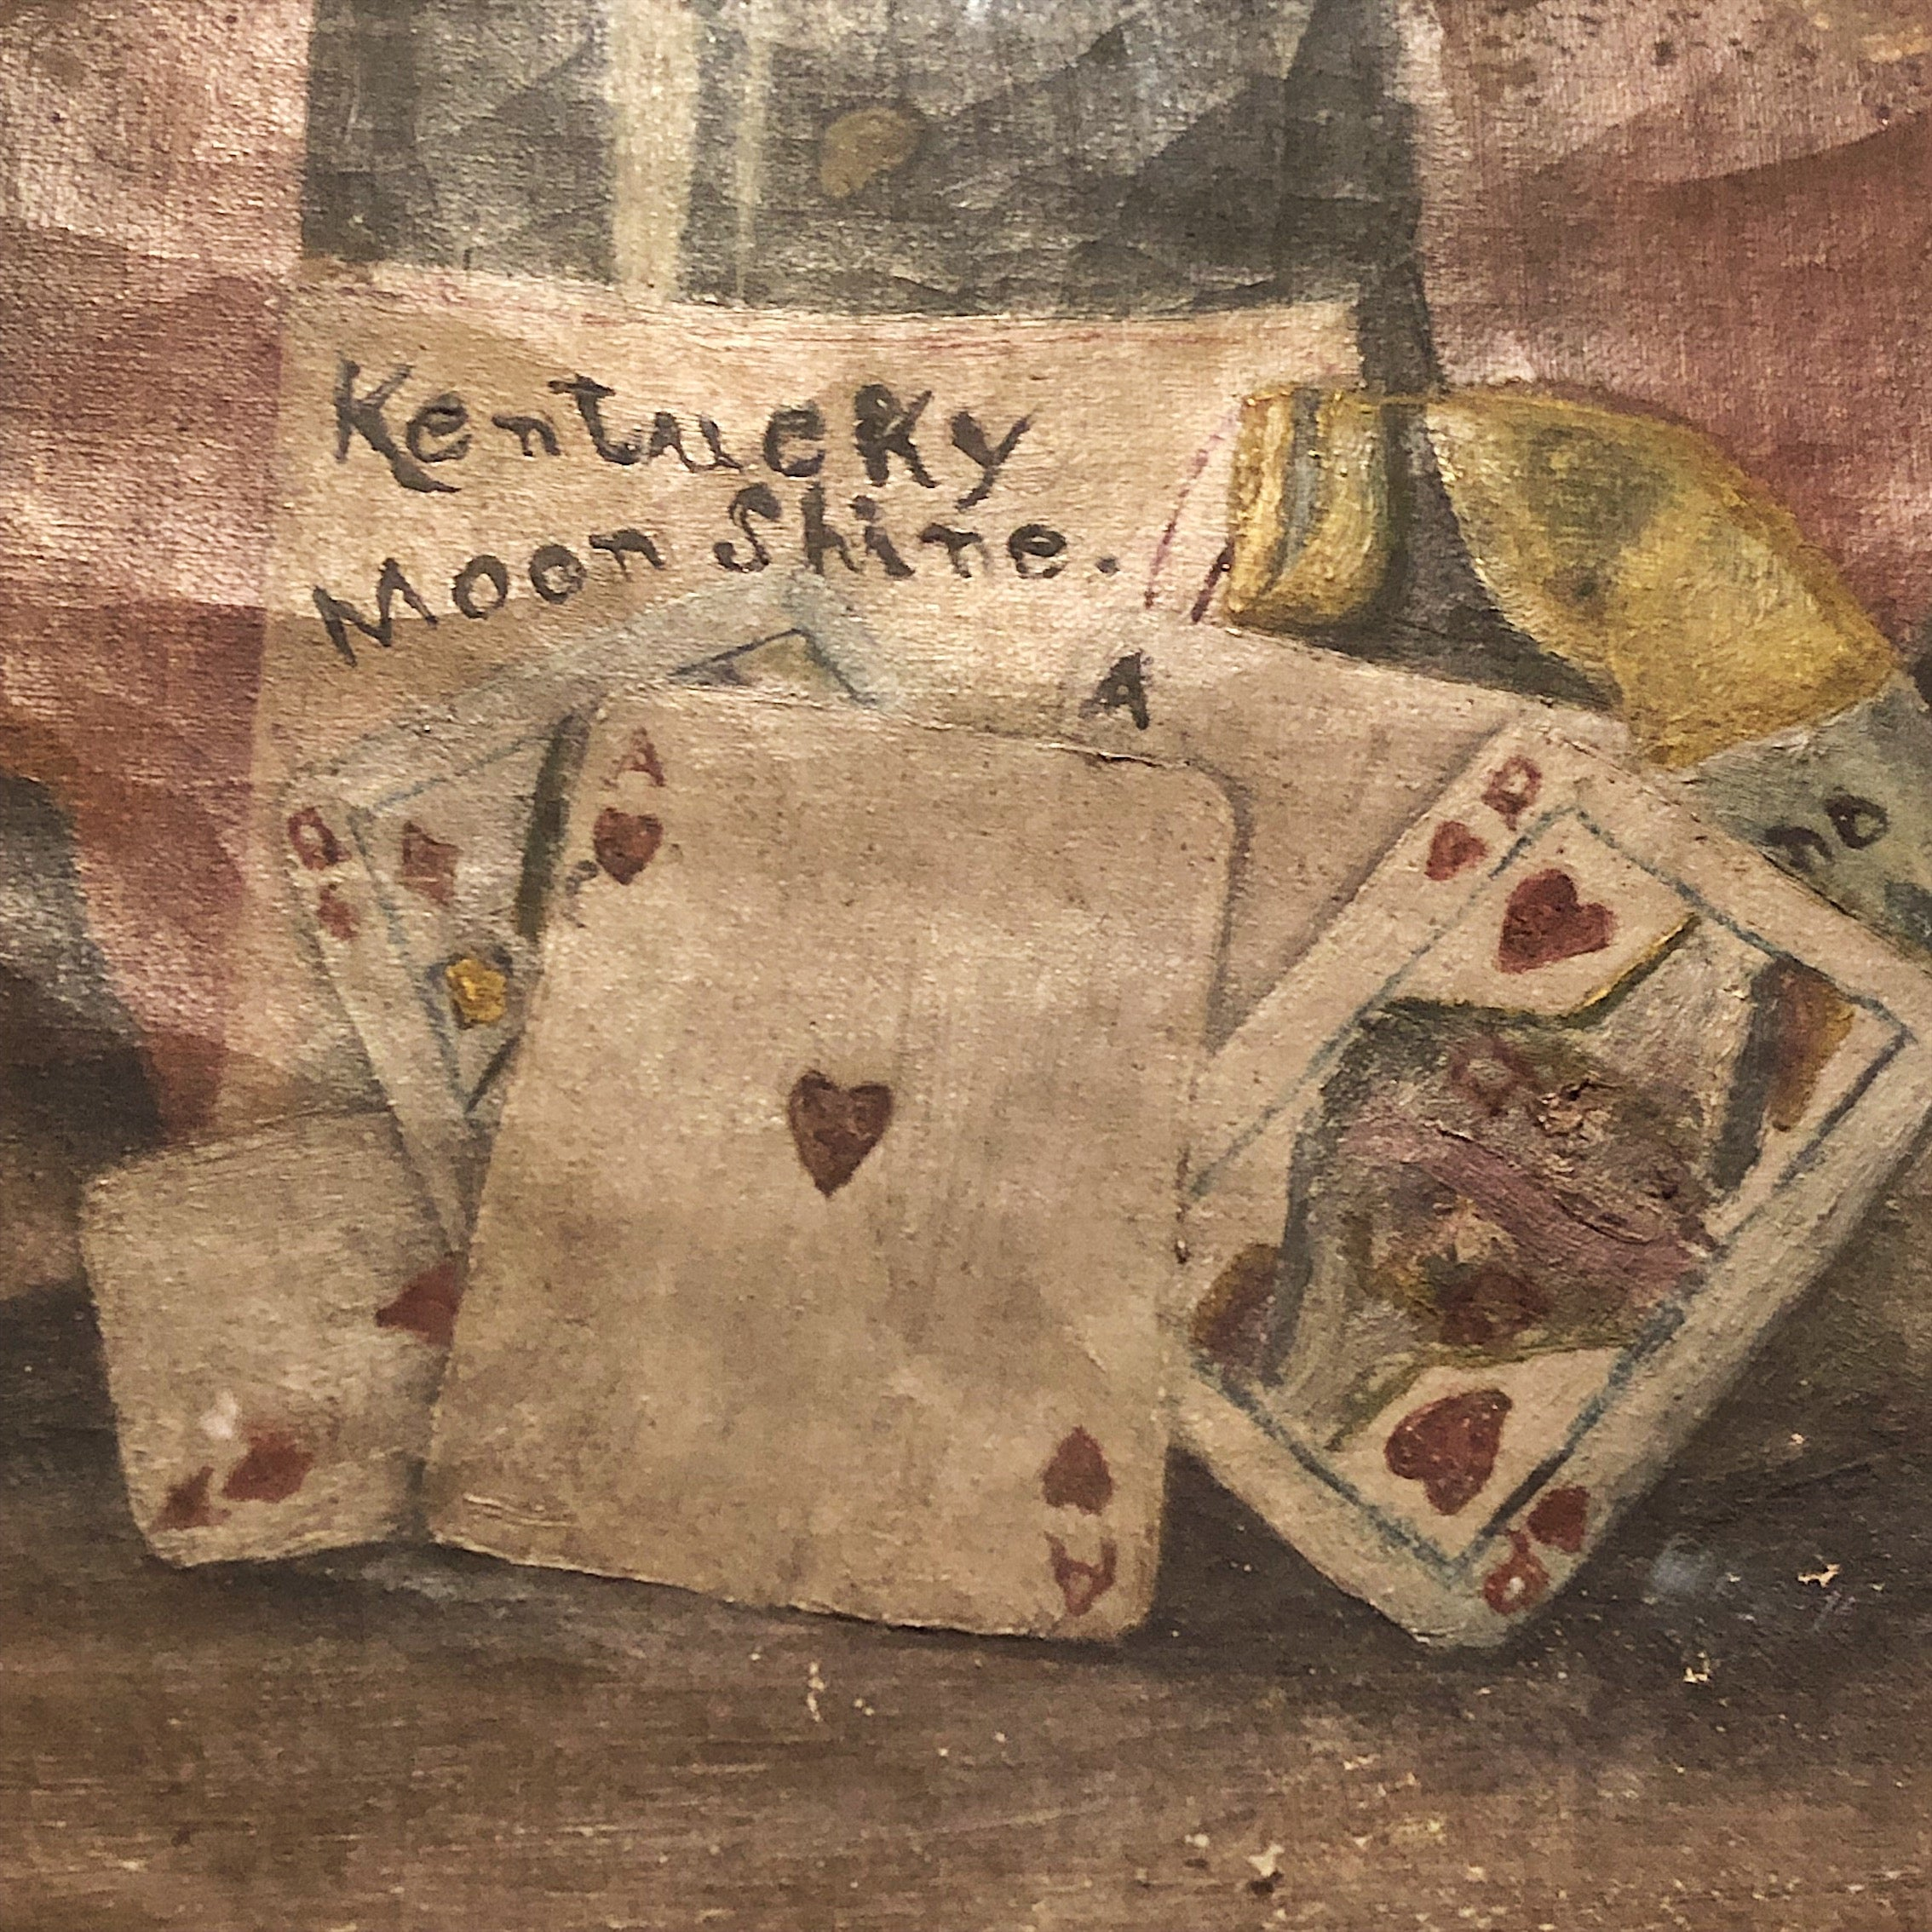 Rare Moonshine Gambling Still Life Oil Painting - 1800s - Antique - Kentucky - Poker - Cards